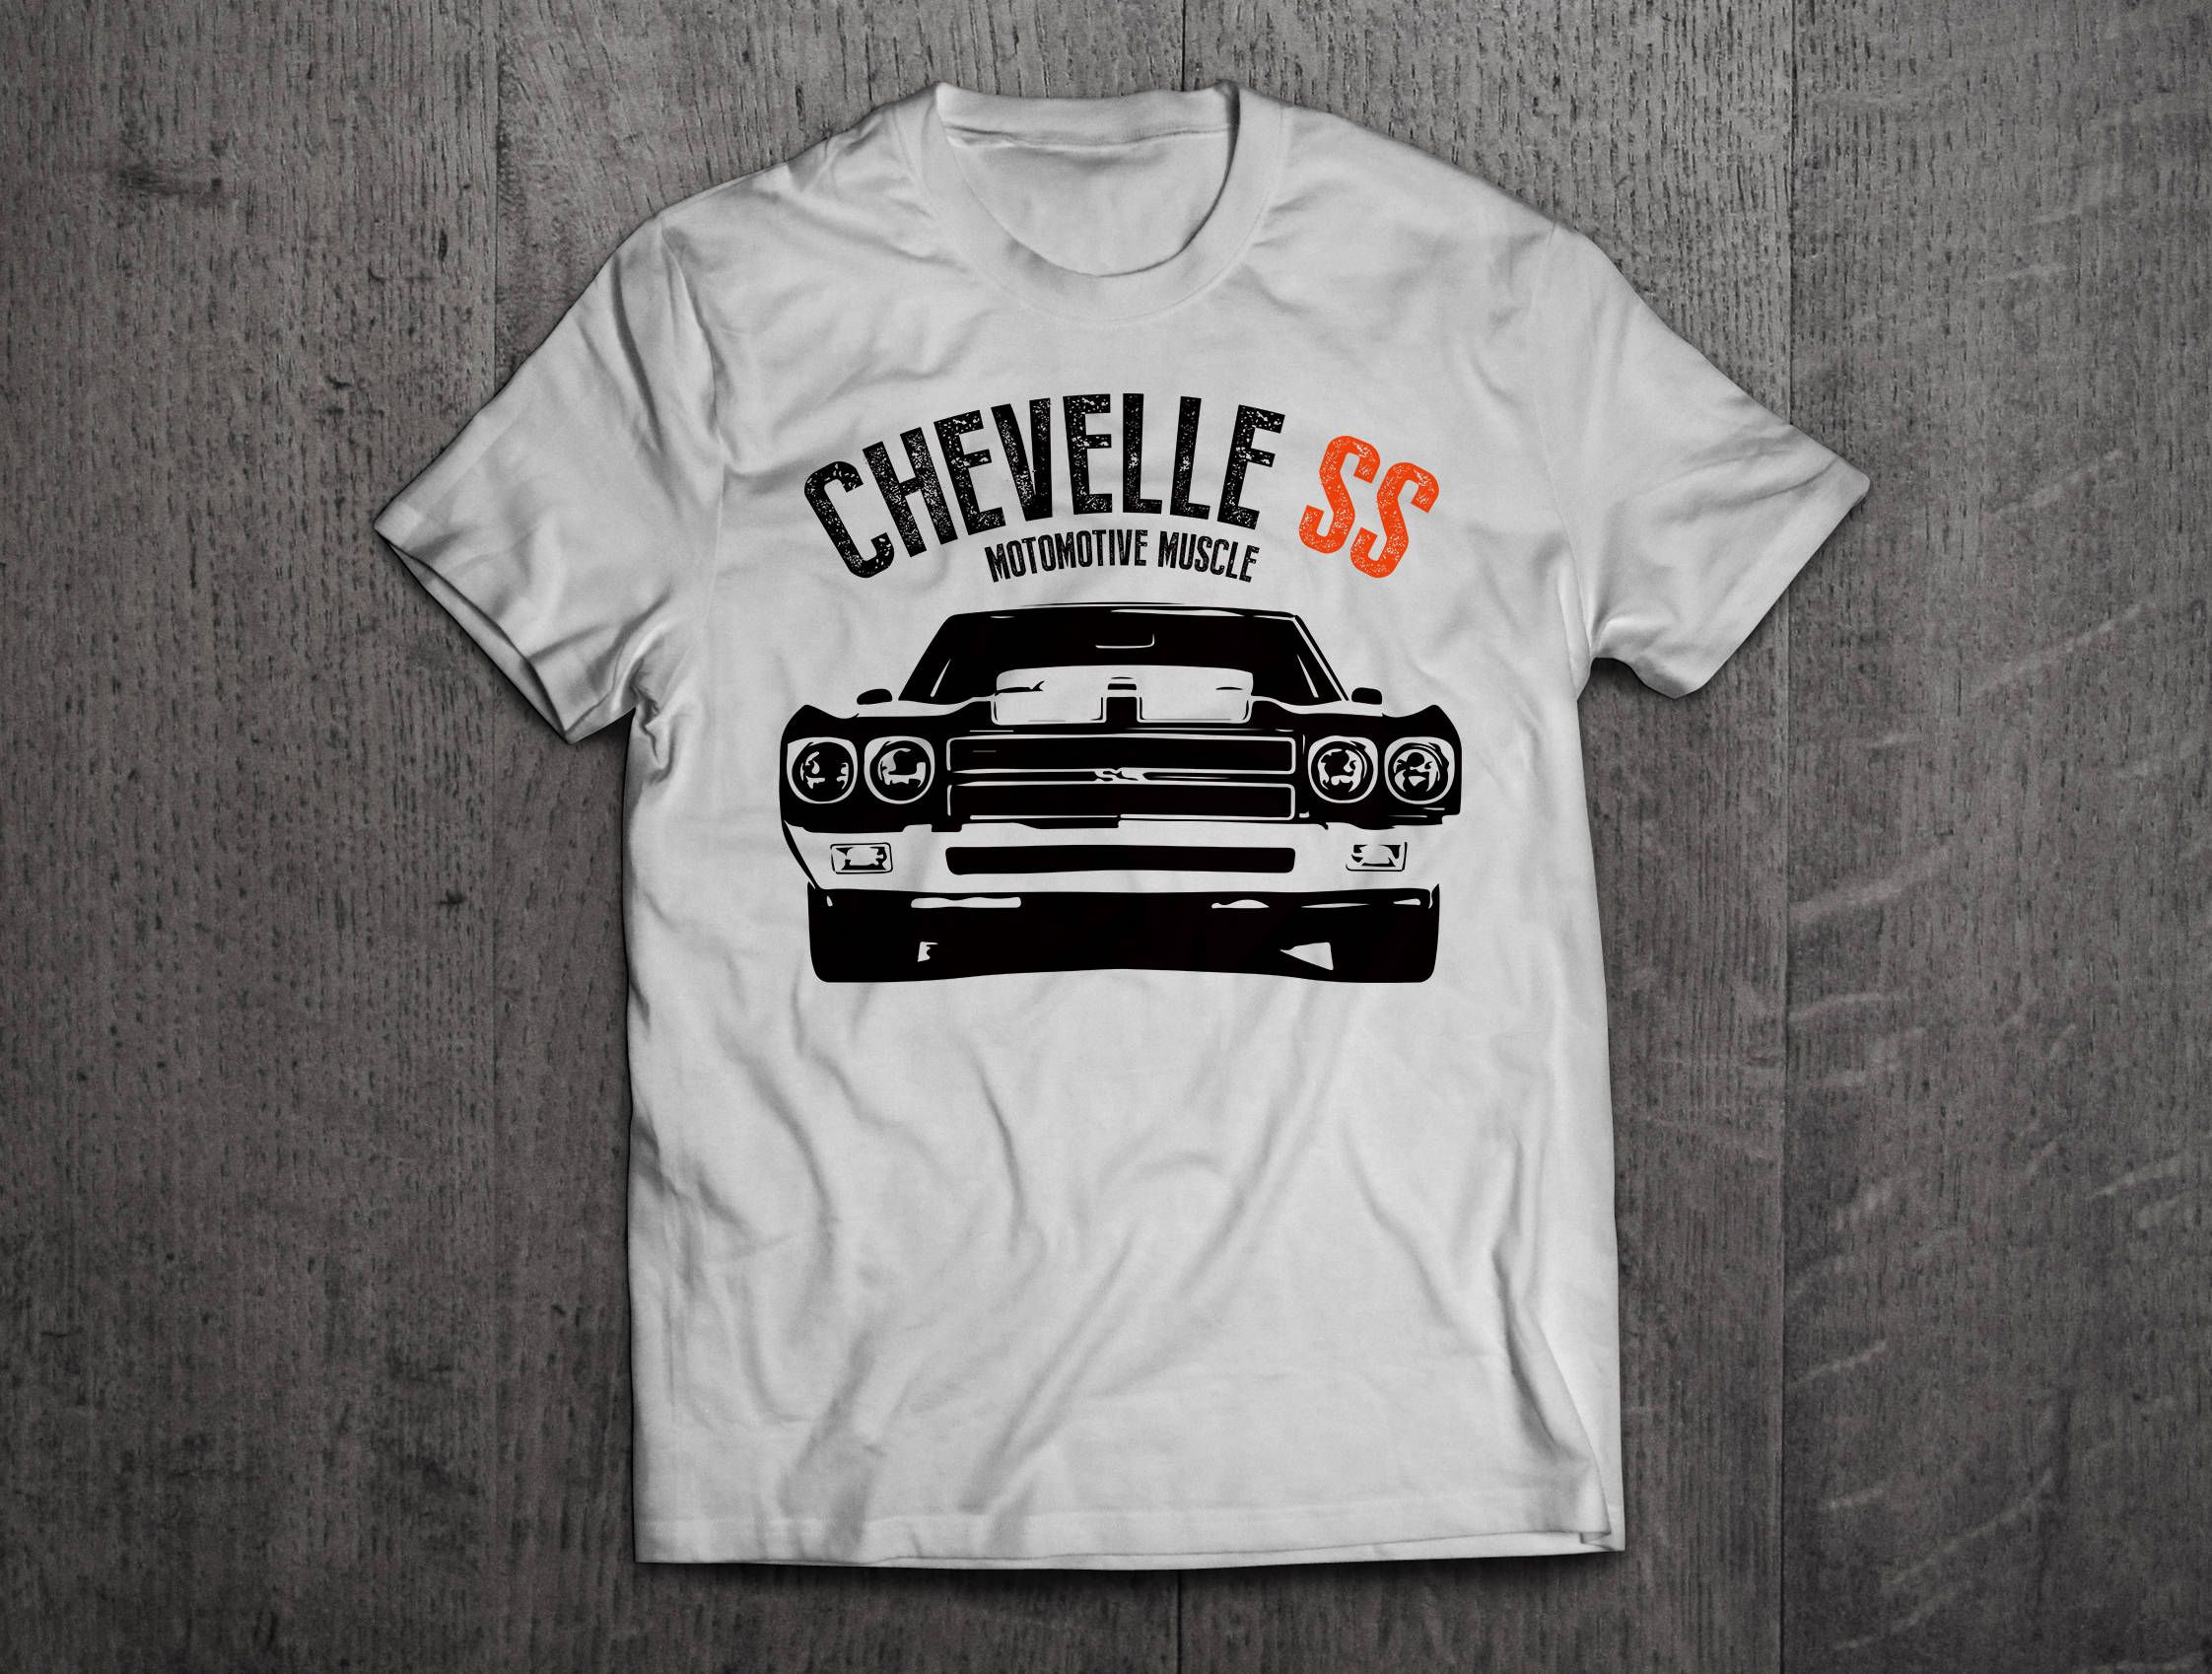 10a059bb Chevy Chevelle Shirts, Chevy SS t shirts, Chevy shirts, Cars t shirts, men  tshirts, women t shirts, muscle car shirts, chevrolet shirts by  MotoMotiveInk on ...